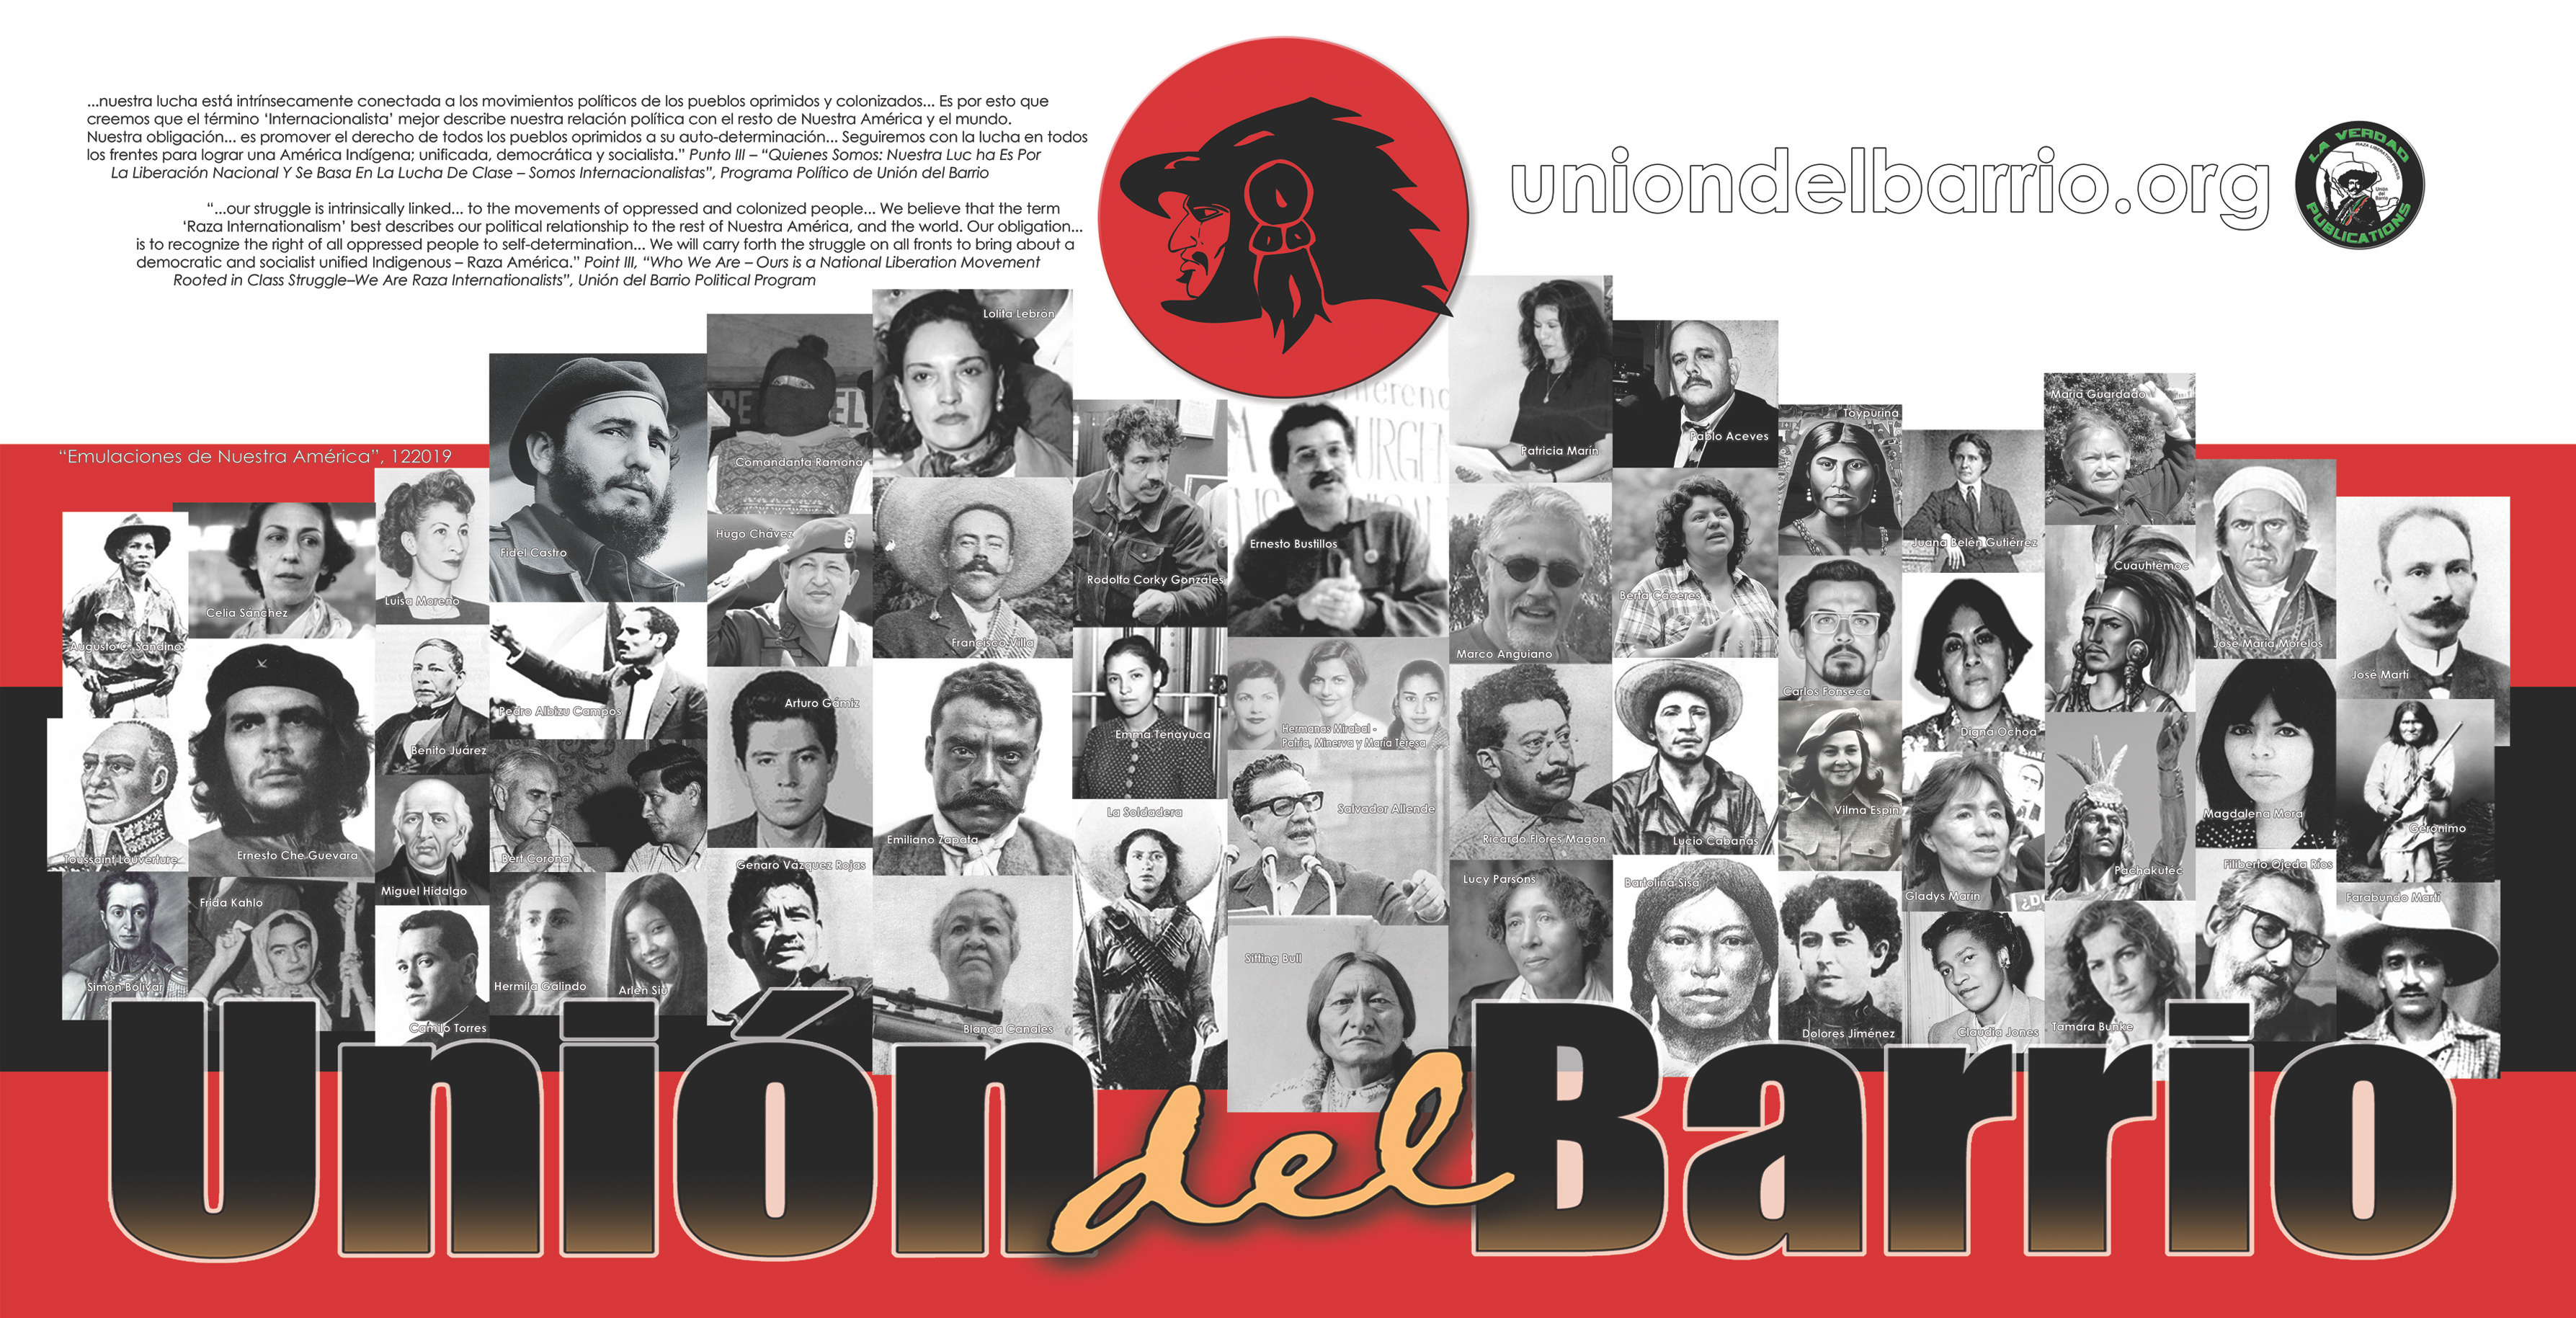 This August 29, Unión del Barrio Celebrates 40 Years of Struggle